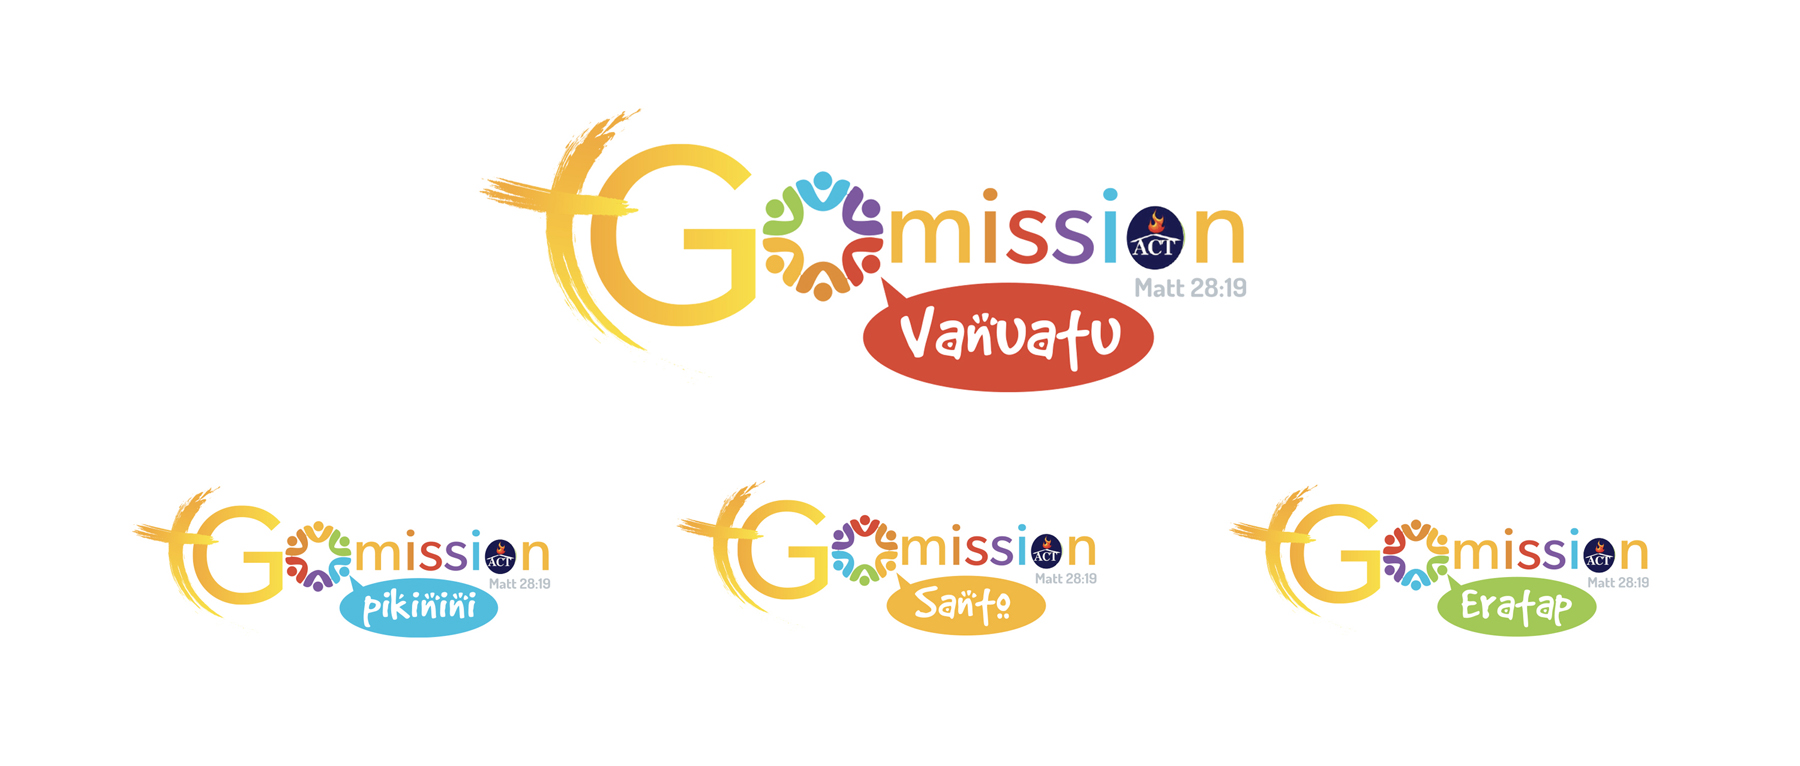 GO Misson Logo variations on white background isolated